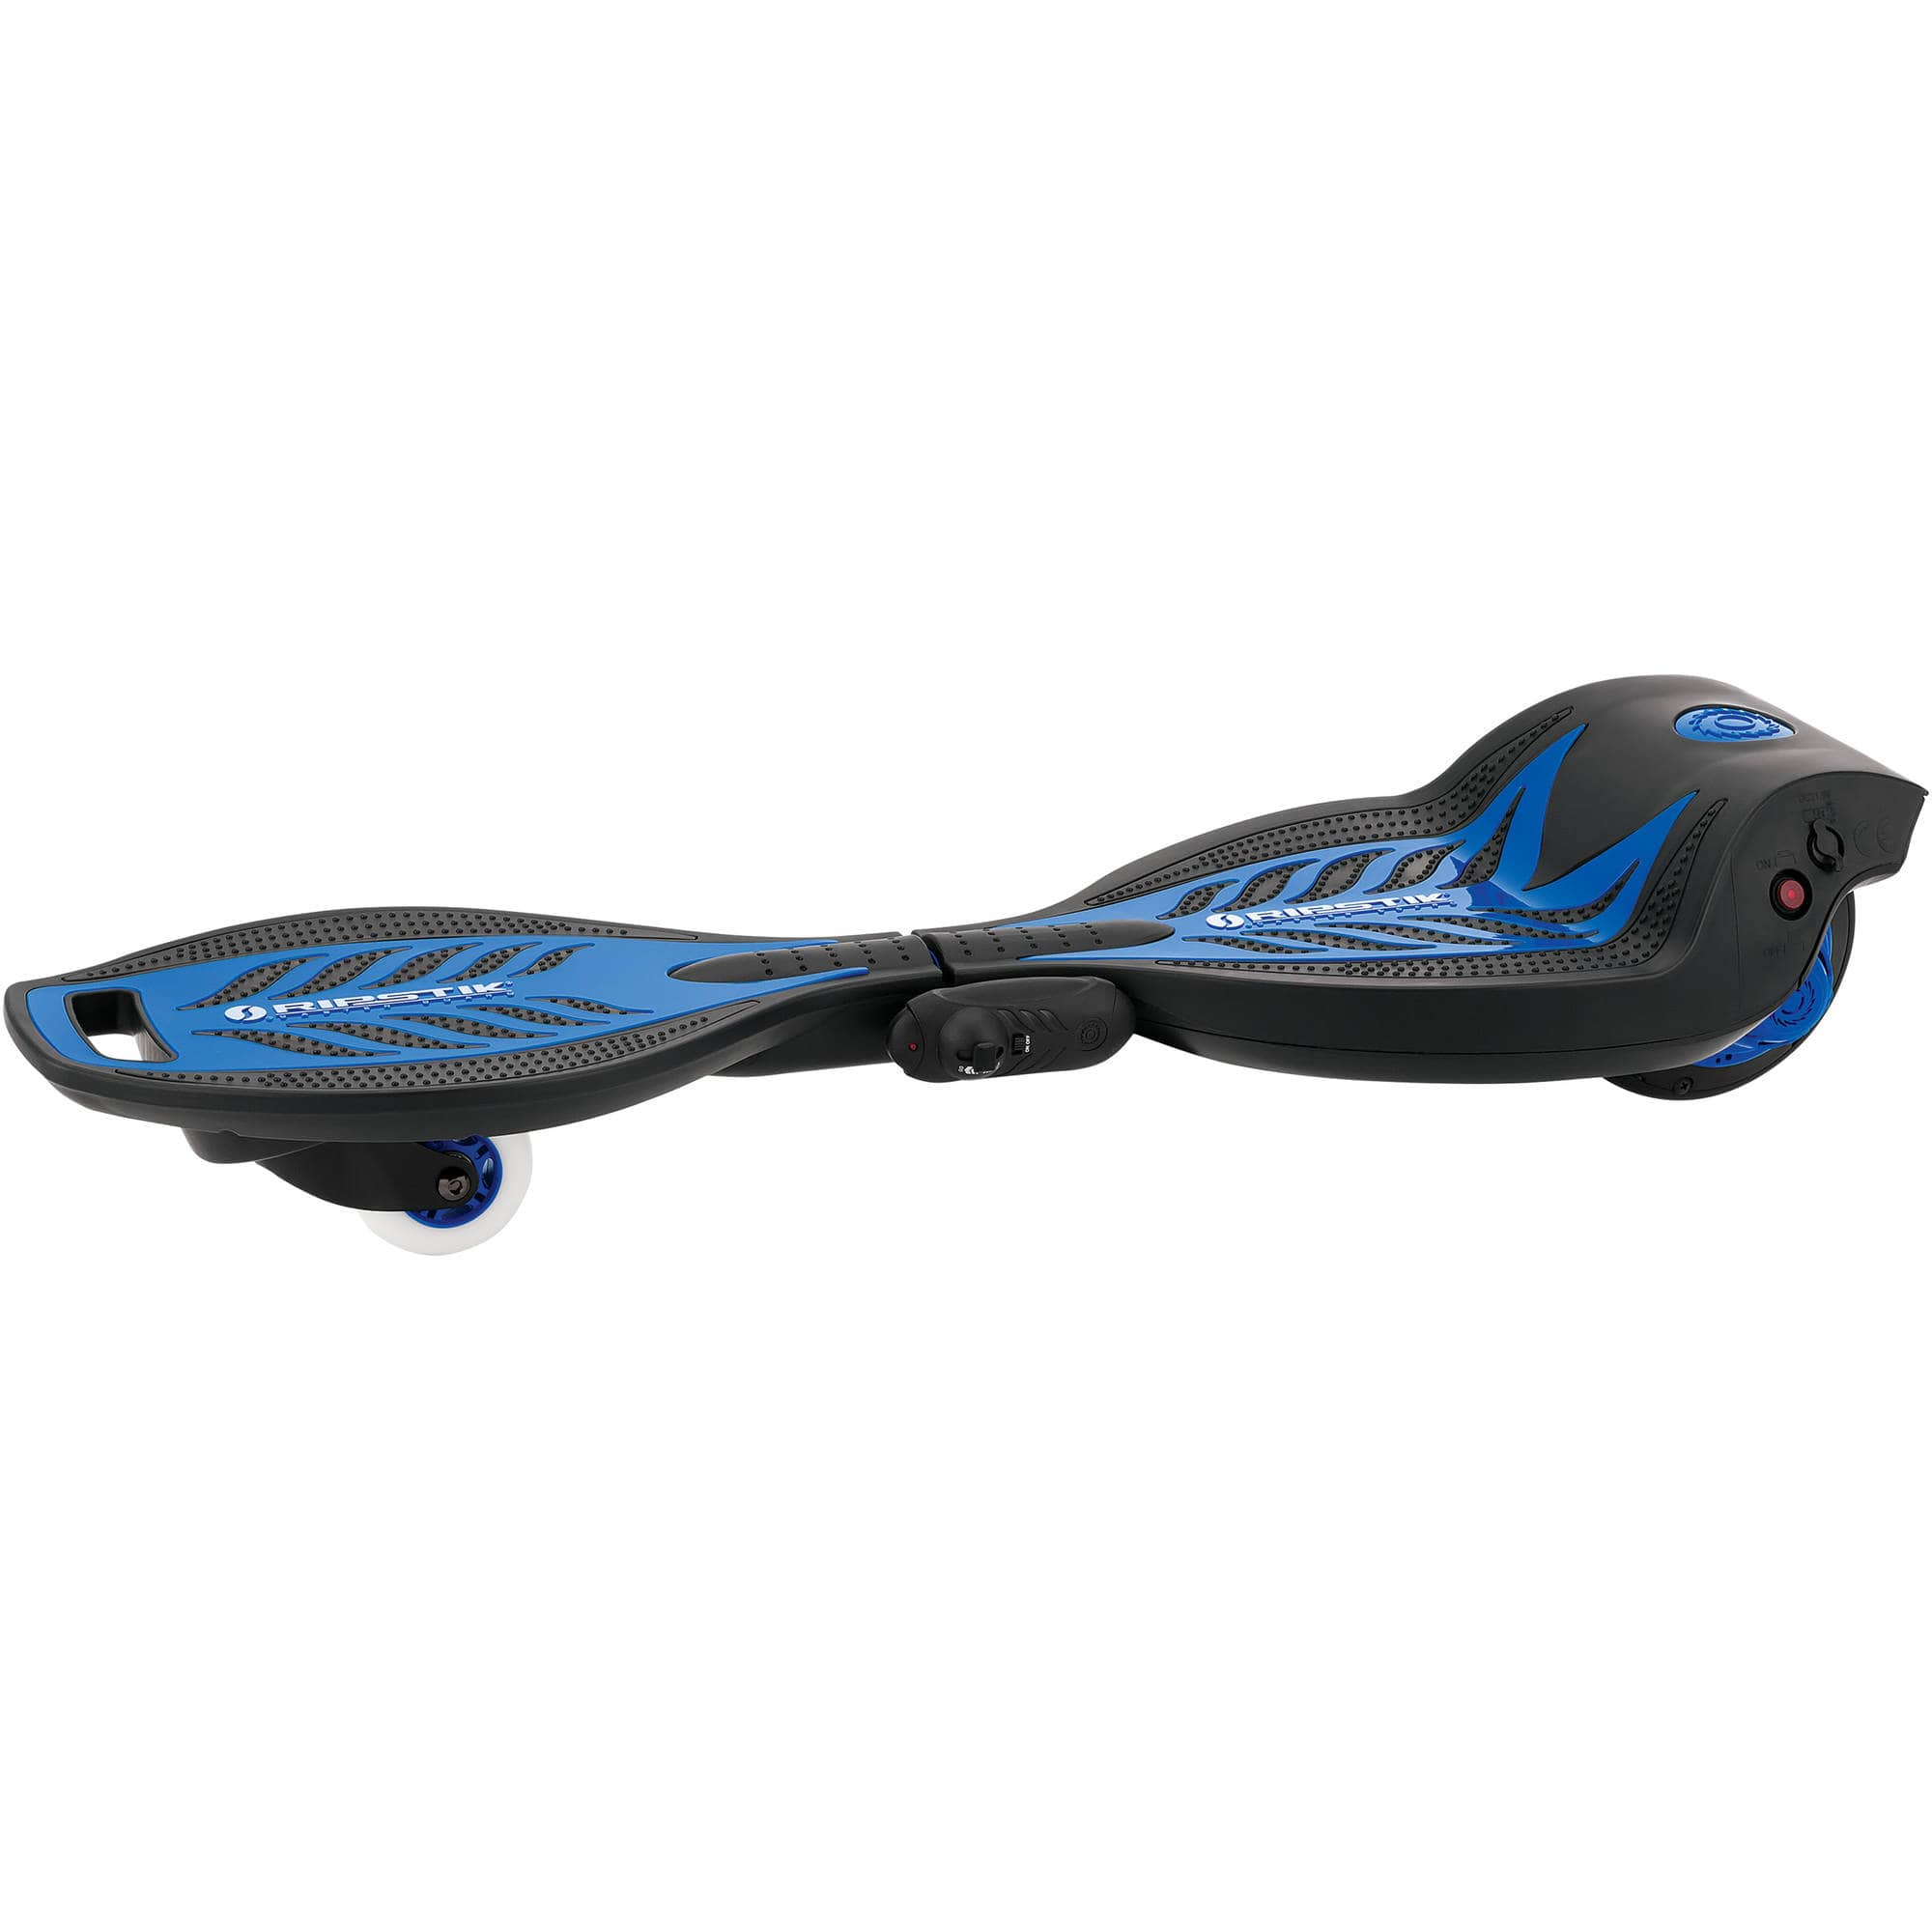 Razor RipStik Electric Caster Board with Power Core Technology $39.97 free shipping